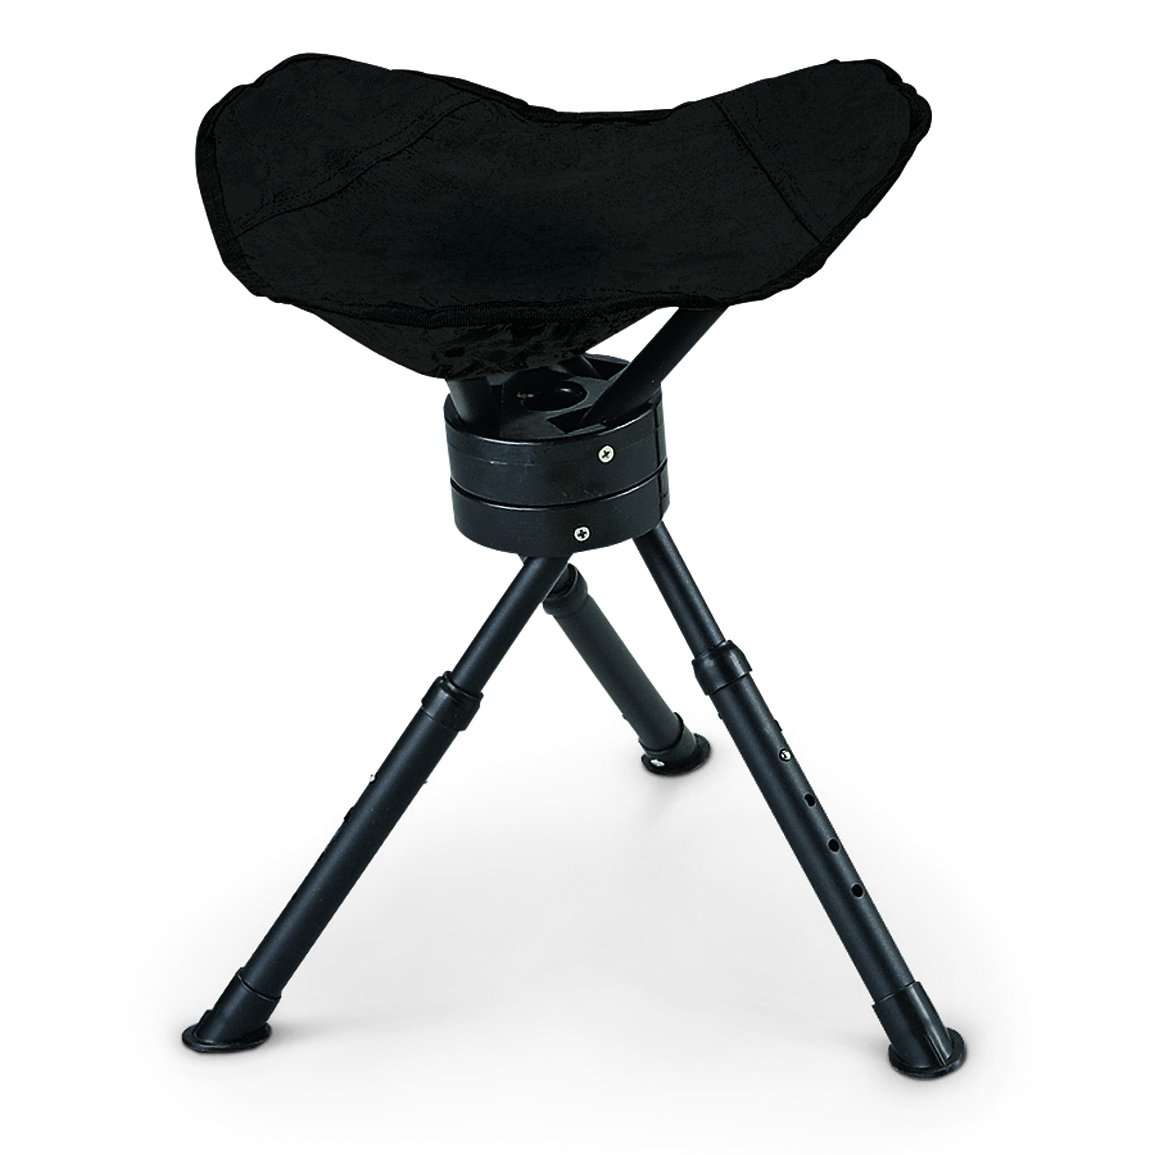 Bow hunting chair - Swivel Hunting Chair Outdoor Archery Bow Rifle Ground Blind Folding 360 Degree